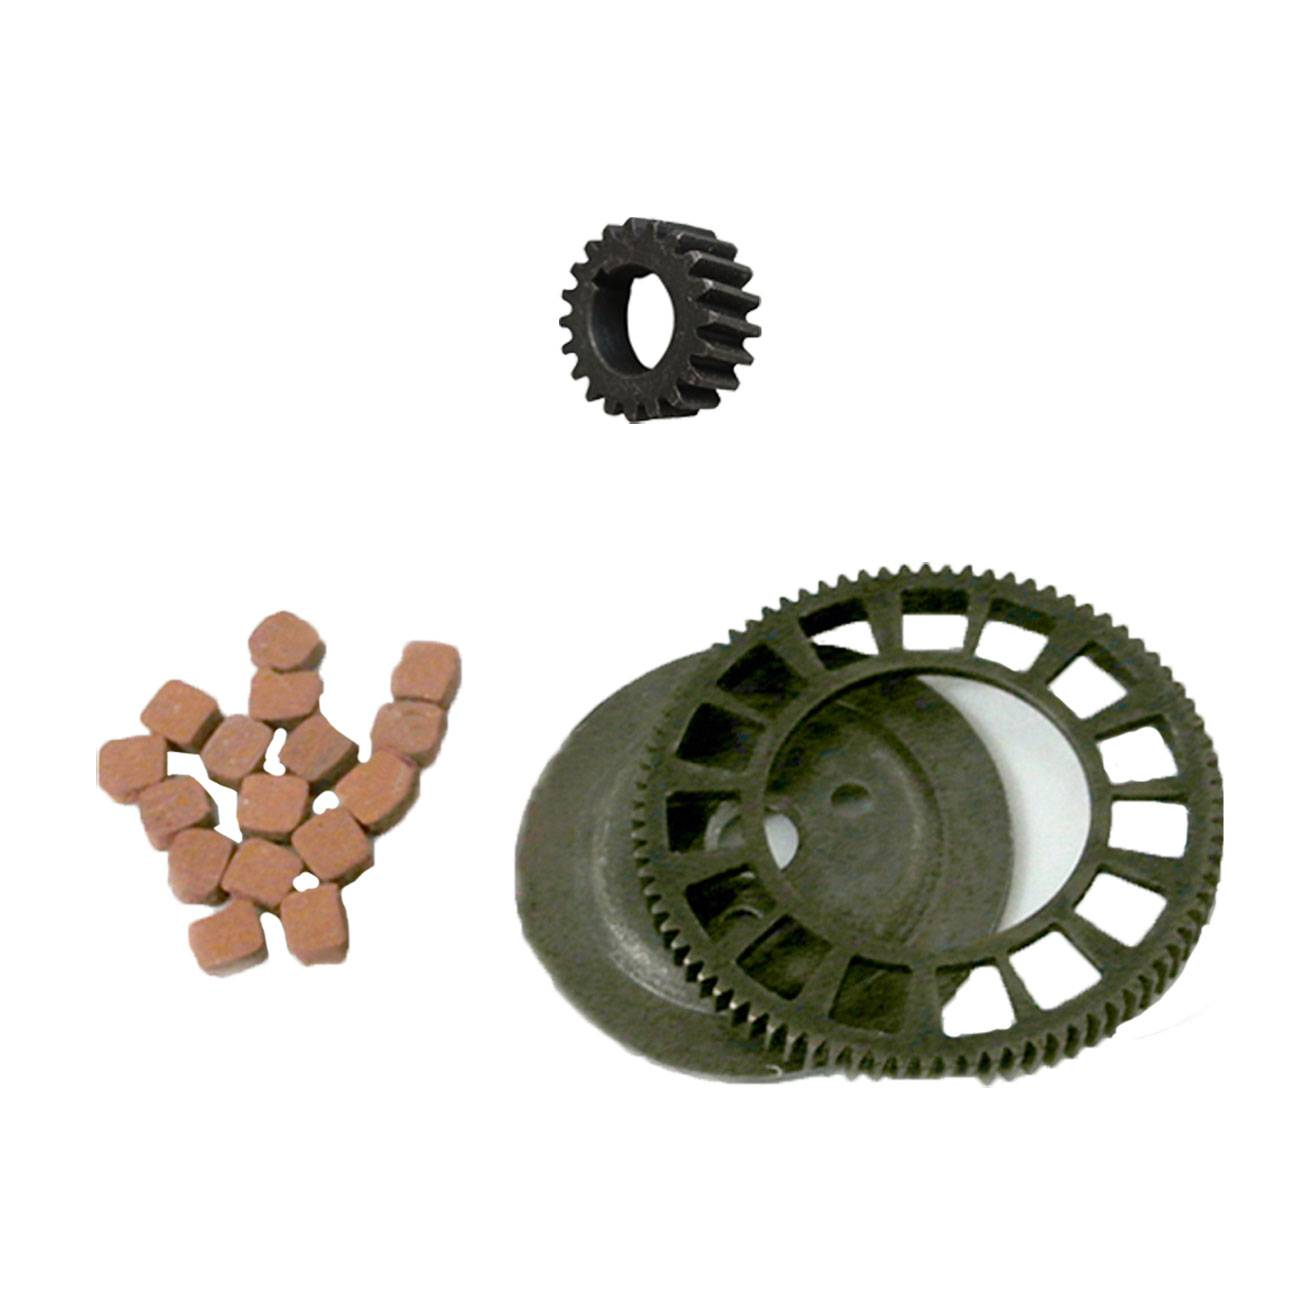 Clutch Friction Pad Set 60cc 80cc Petrol Gas Motorised Bicycle Engine Conversion Kit